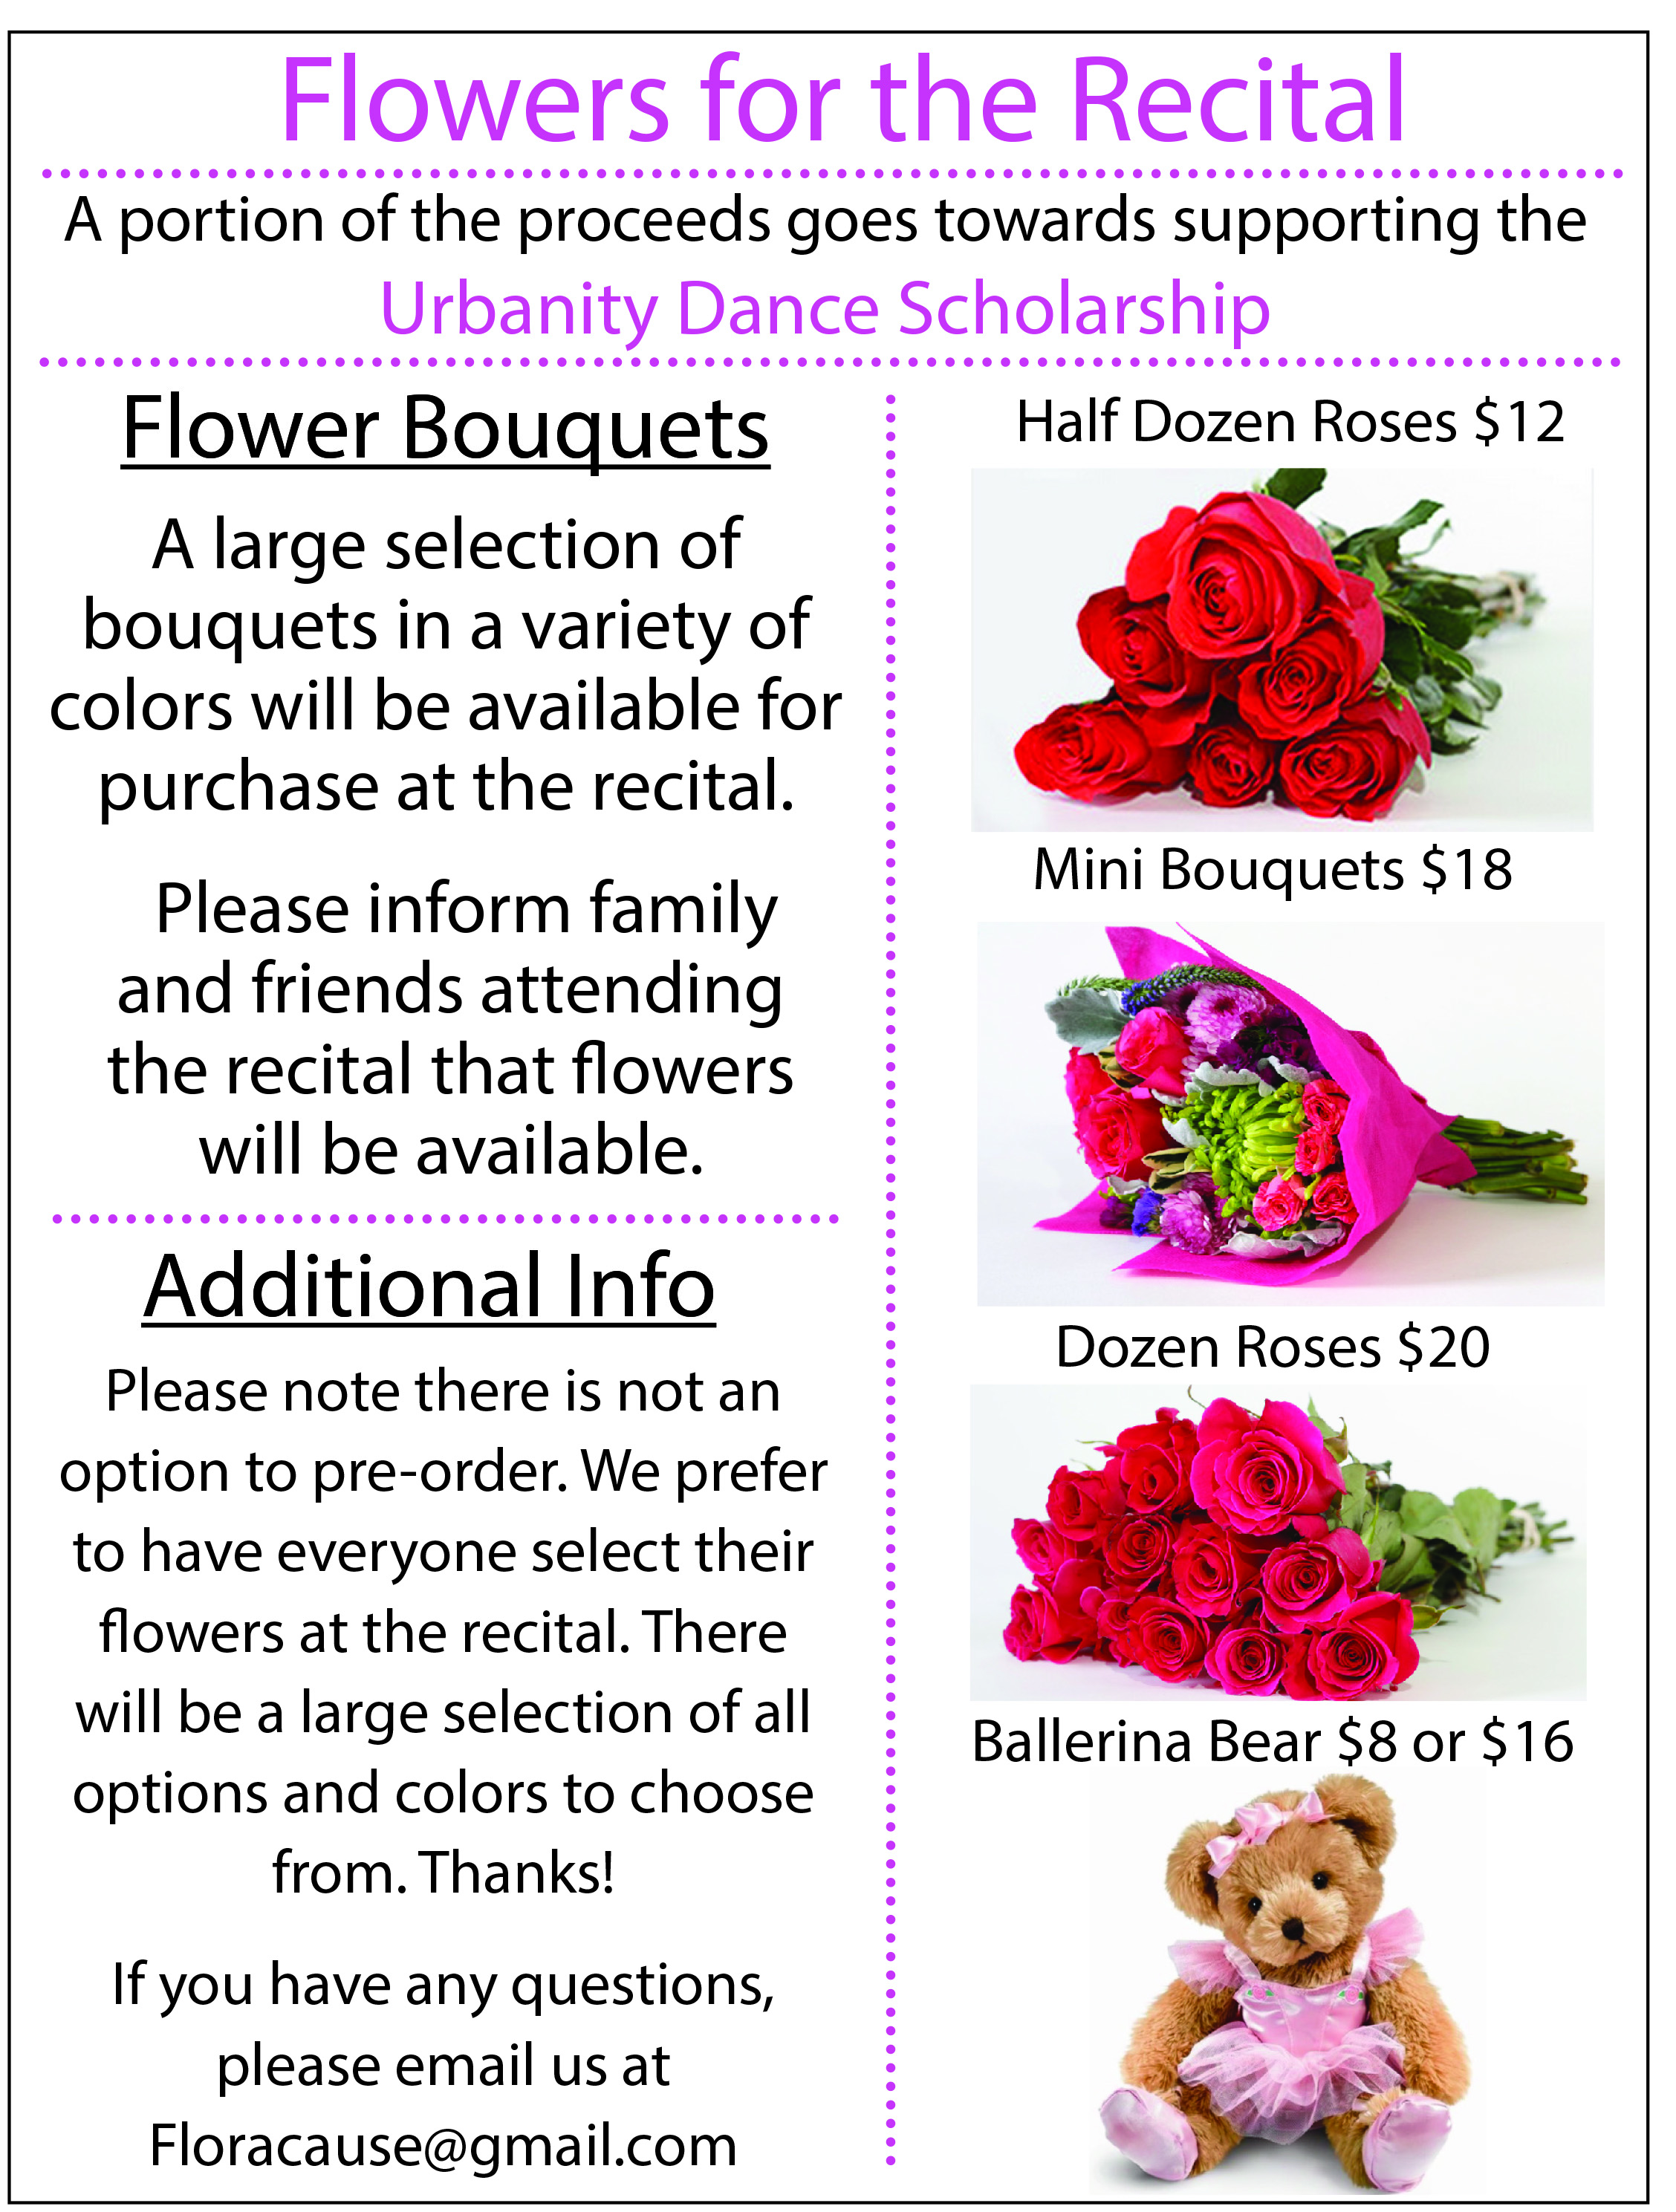 Dance Recital Flower Flyer (UDS).jpg